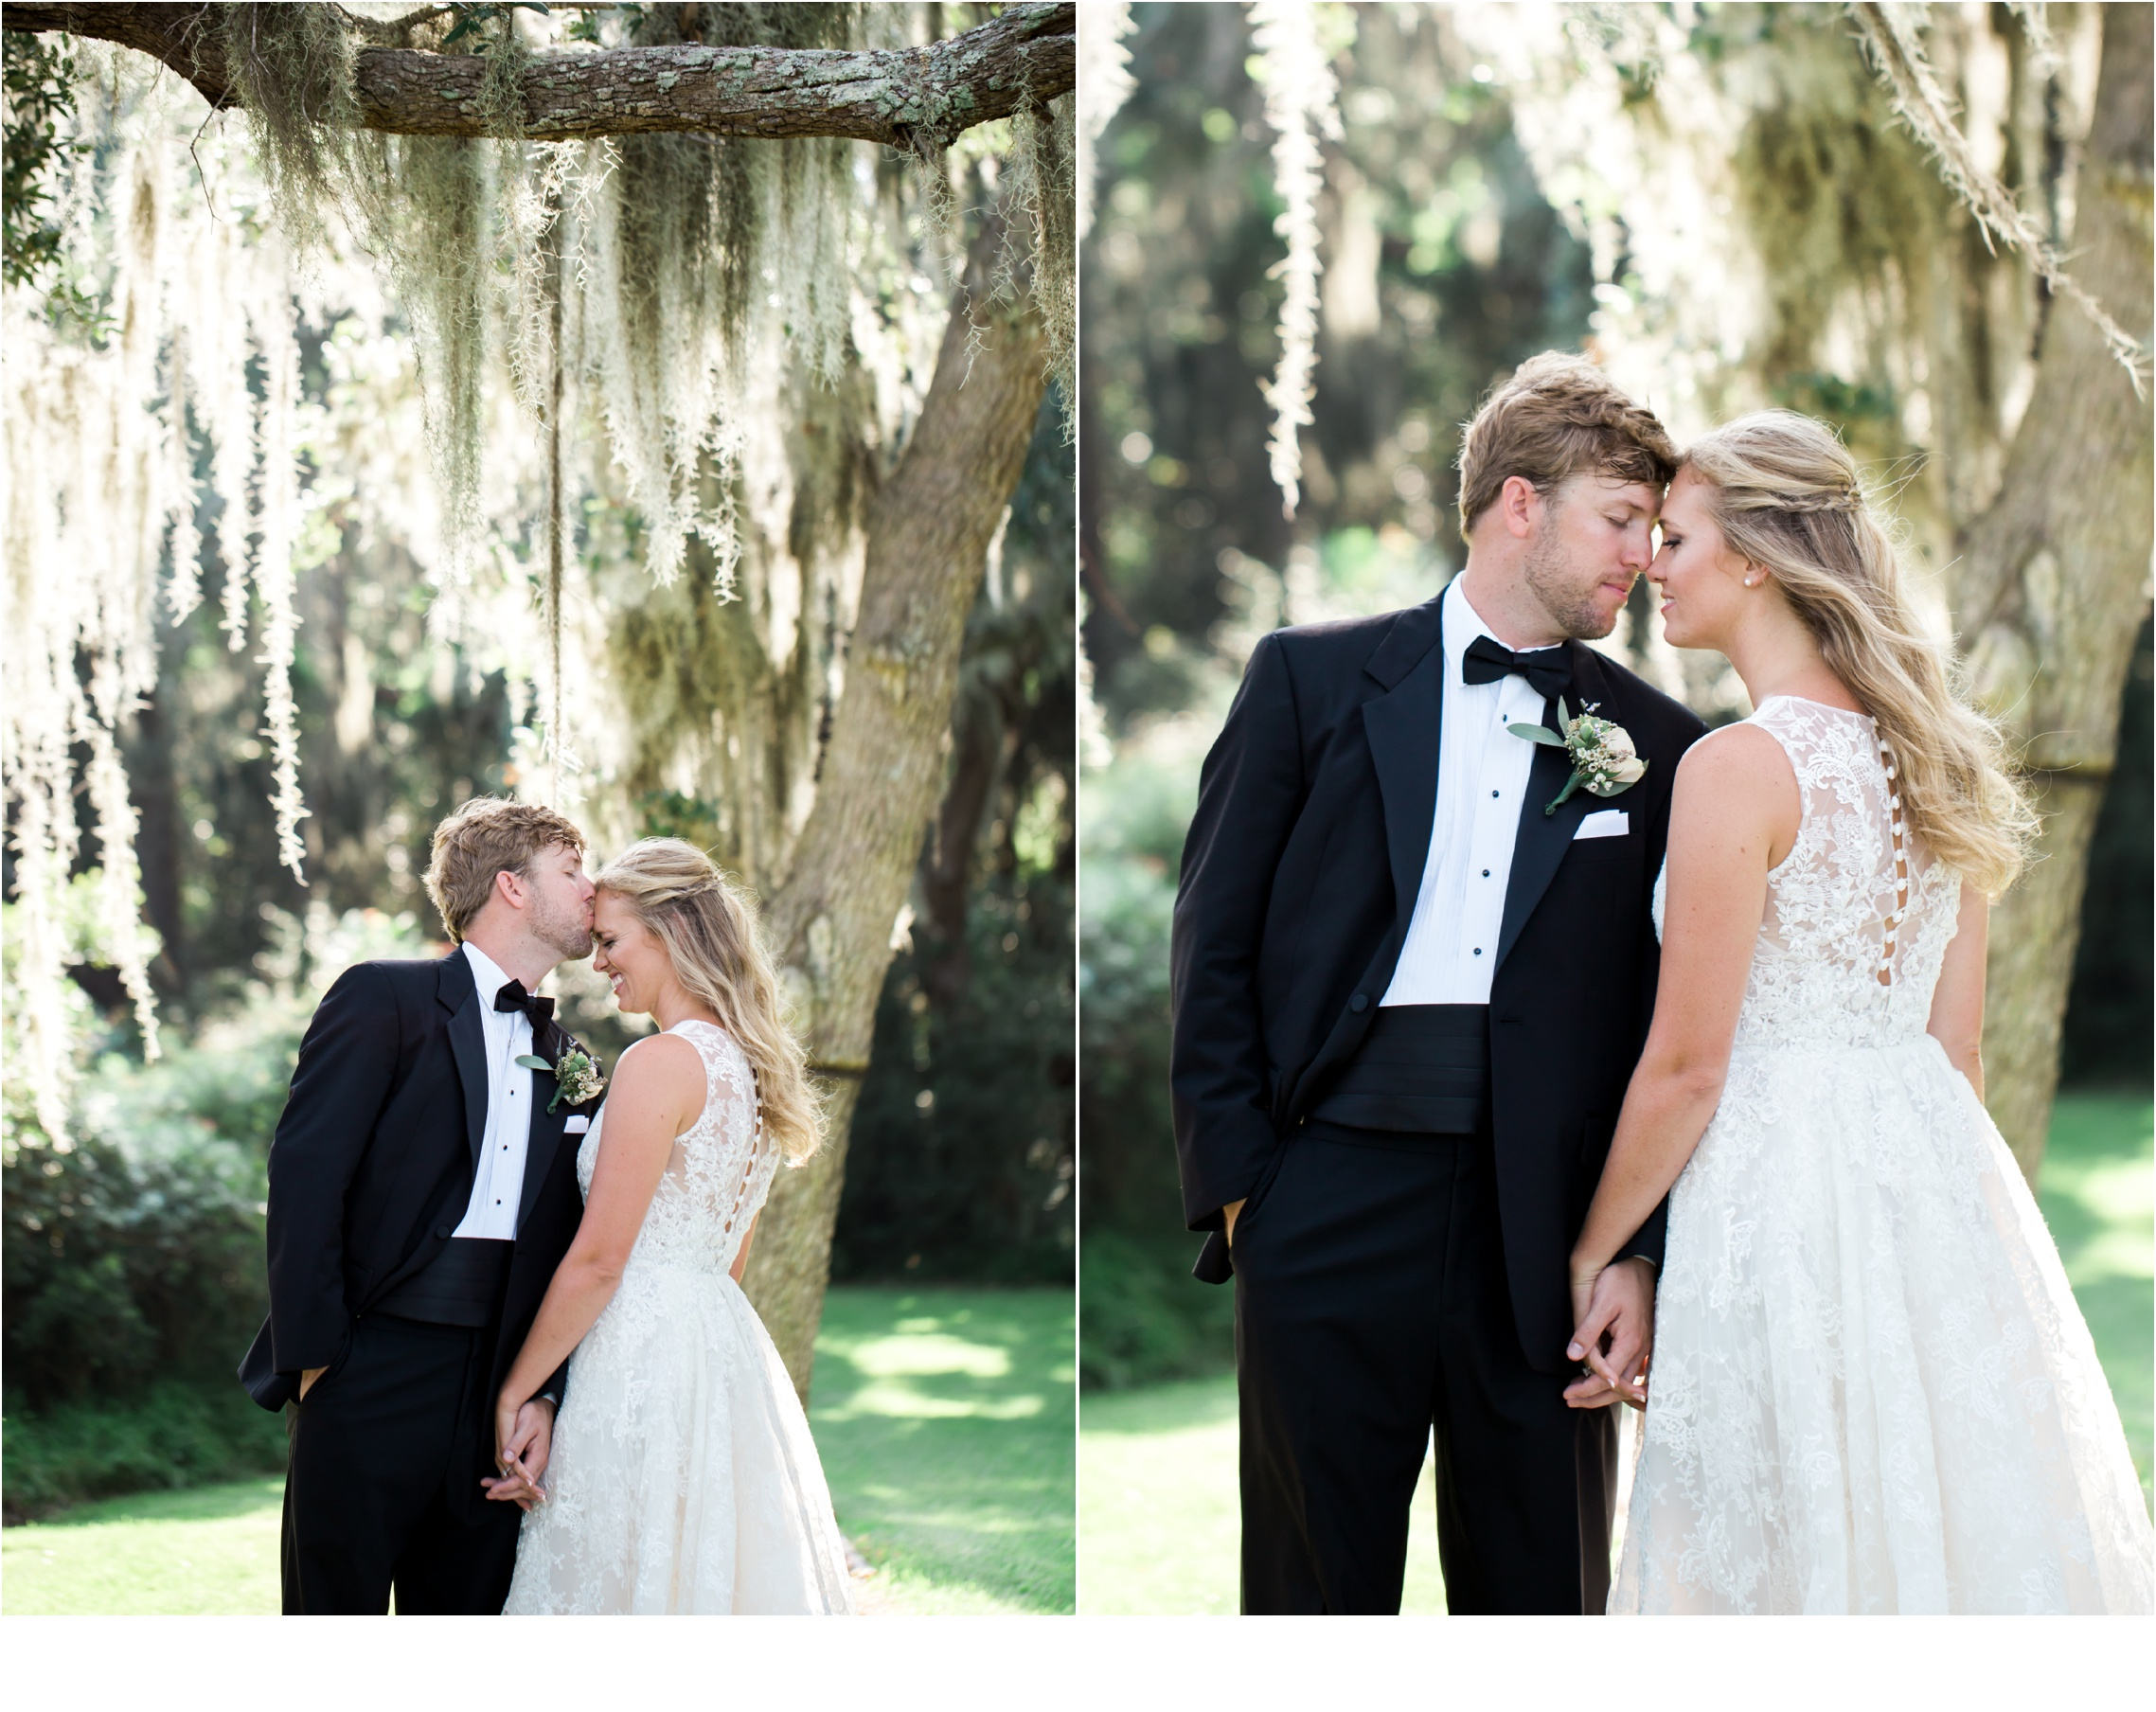 Rainey_Gregg_Photography_St._Simons_Island_Georgia_California_Wedding_Portrait_Photography_0054.jpg